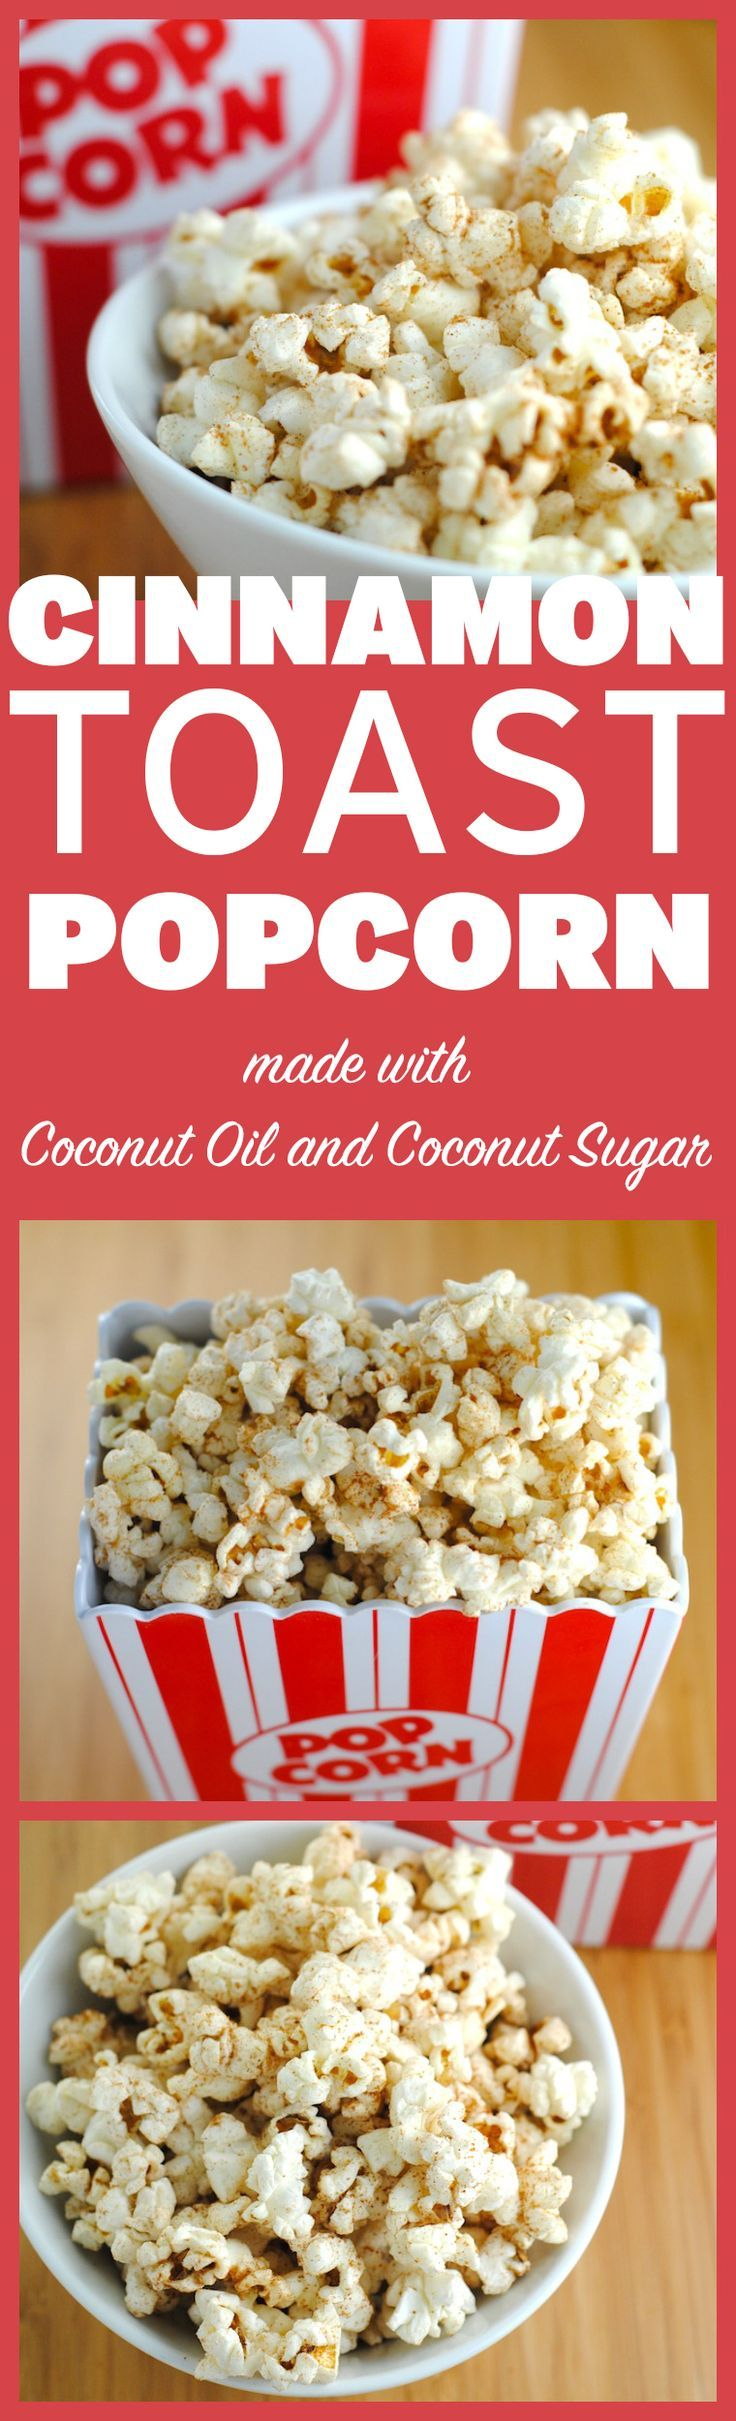 Cinnamon Toast Popcorn is given a health-boost with coconut oil and coconut sugar!   http://theblenderist.com/cinnamon-toast-popcorn/